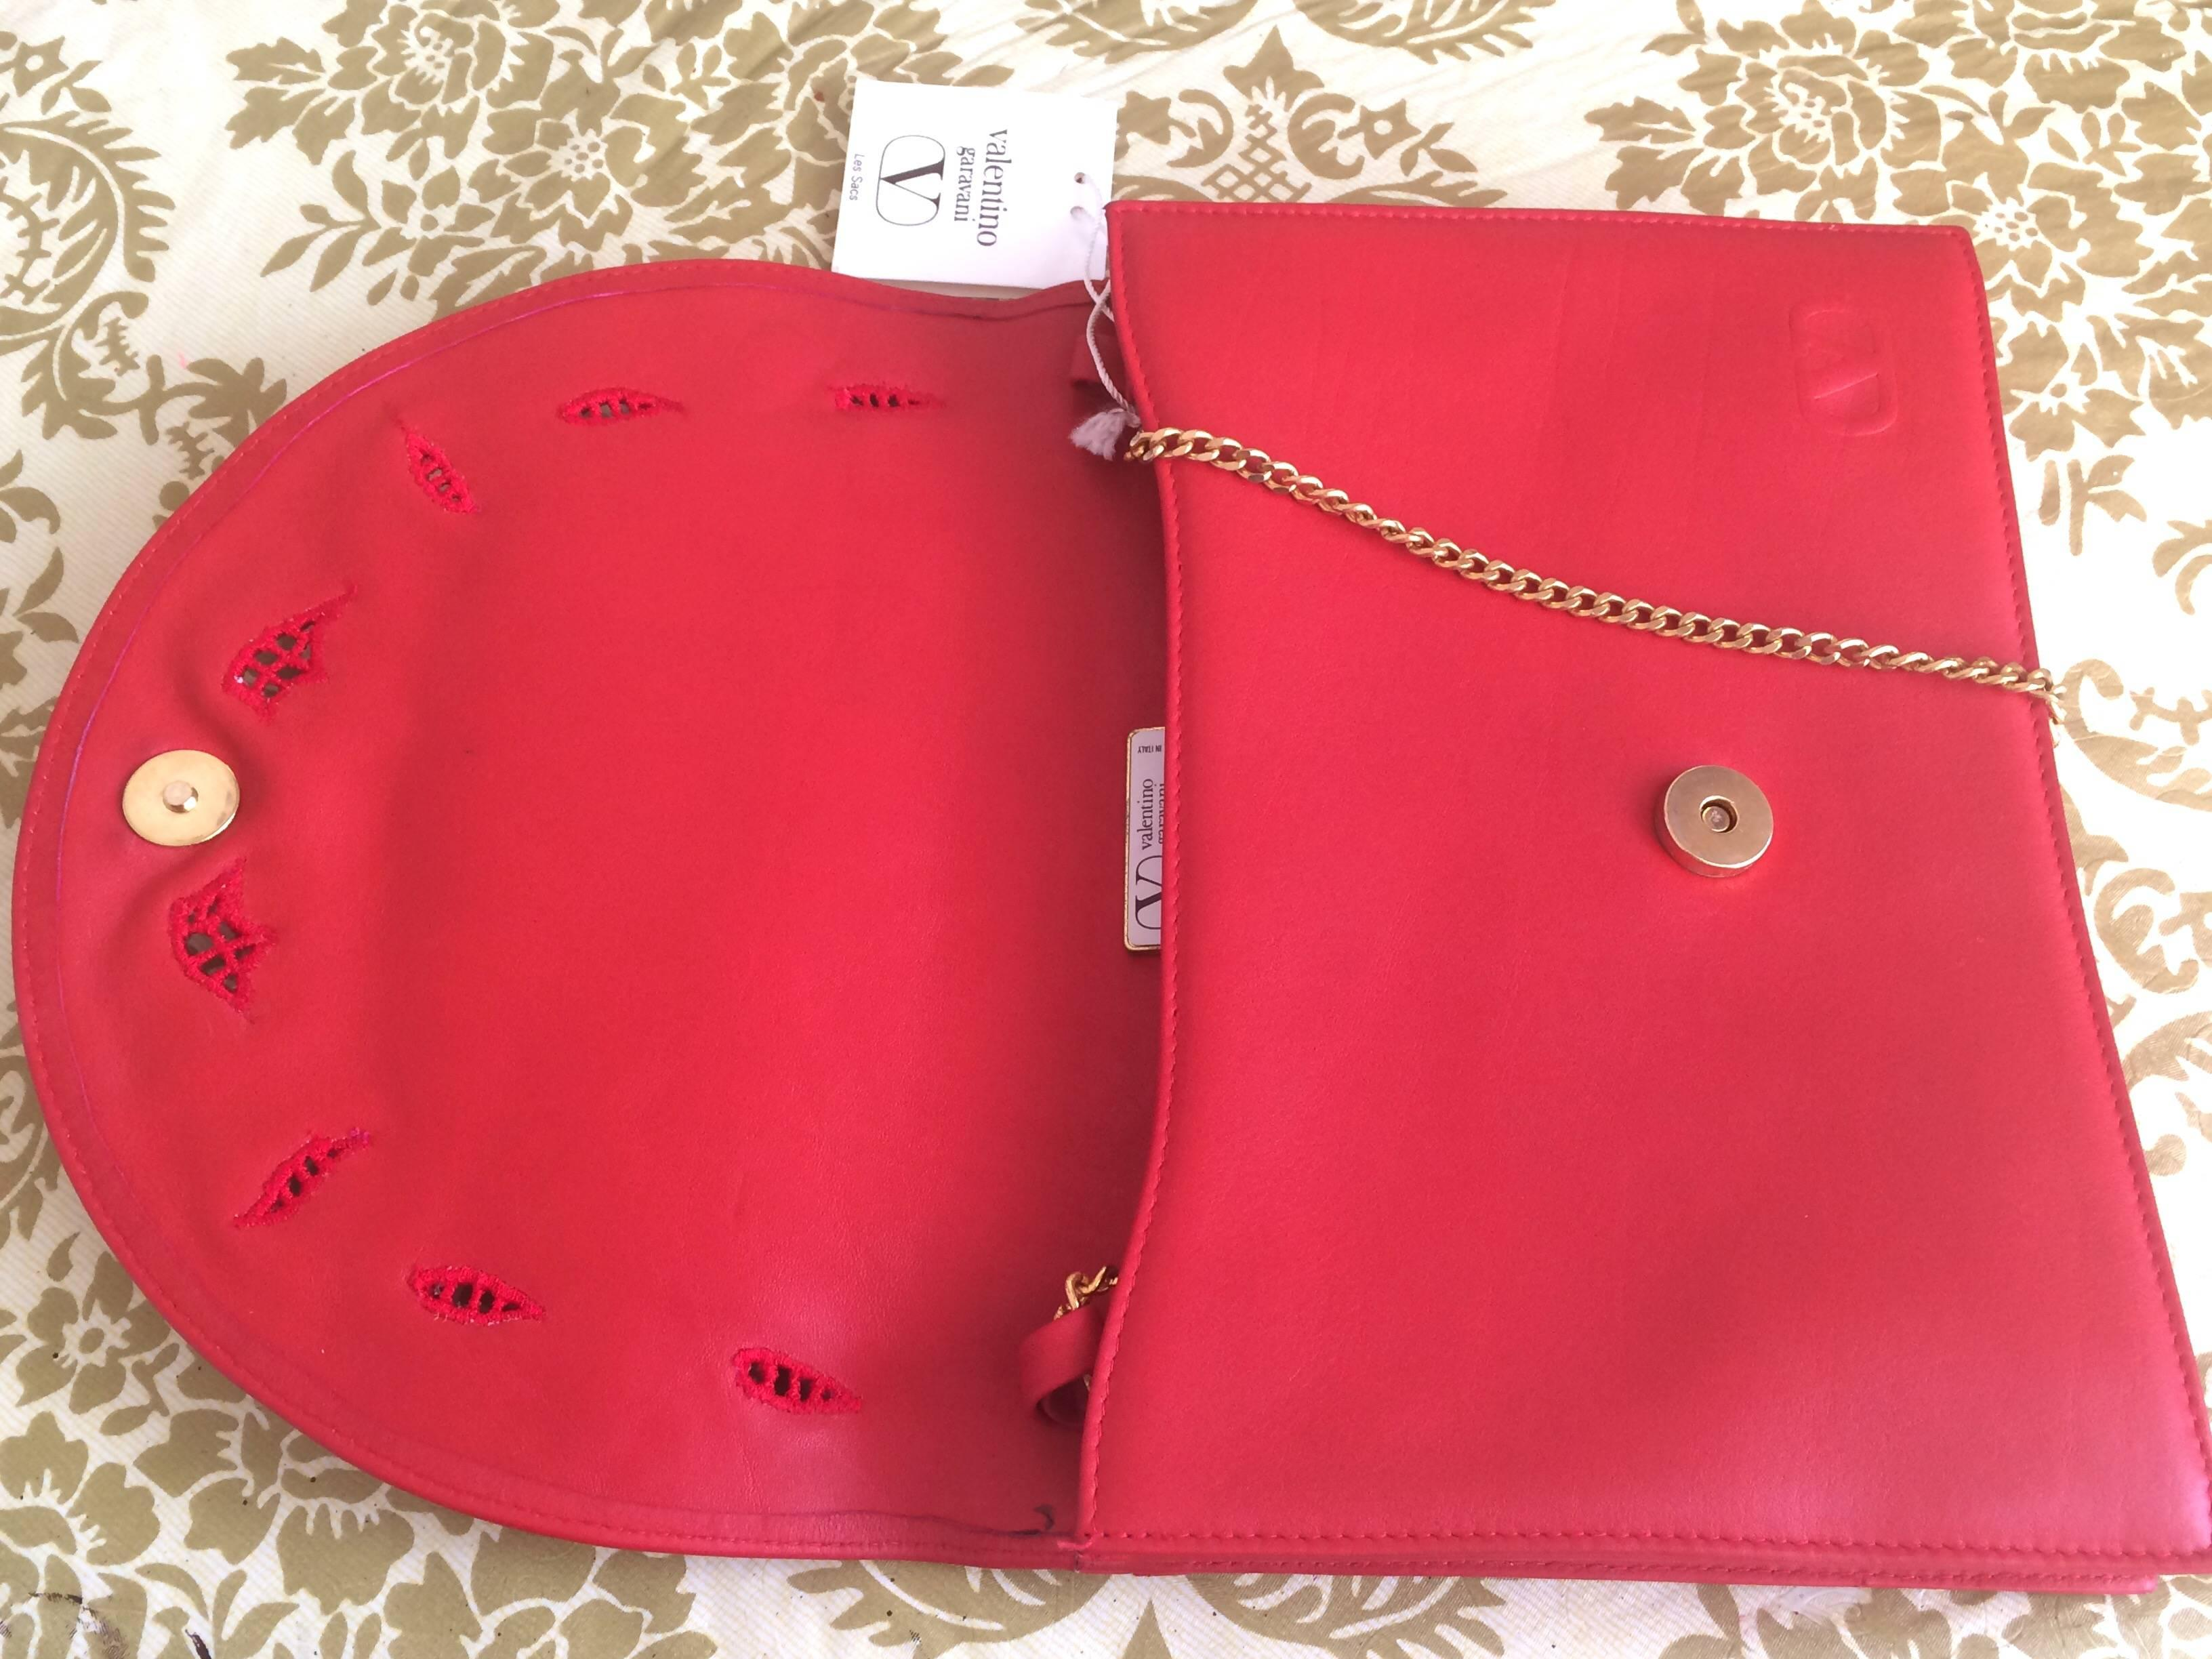 e9b2e8bd30d59 Valentino Vintage Valentino Garavani Red Clutch Shoulder Bag With Flower  Embroidery Deco W4Le26oU